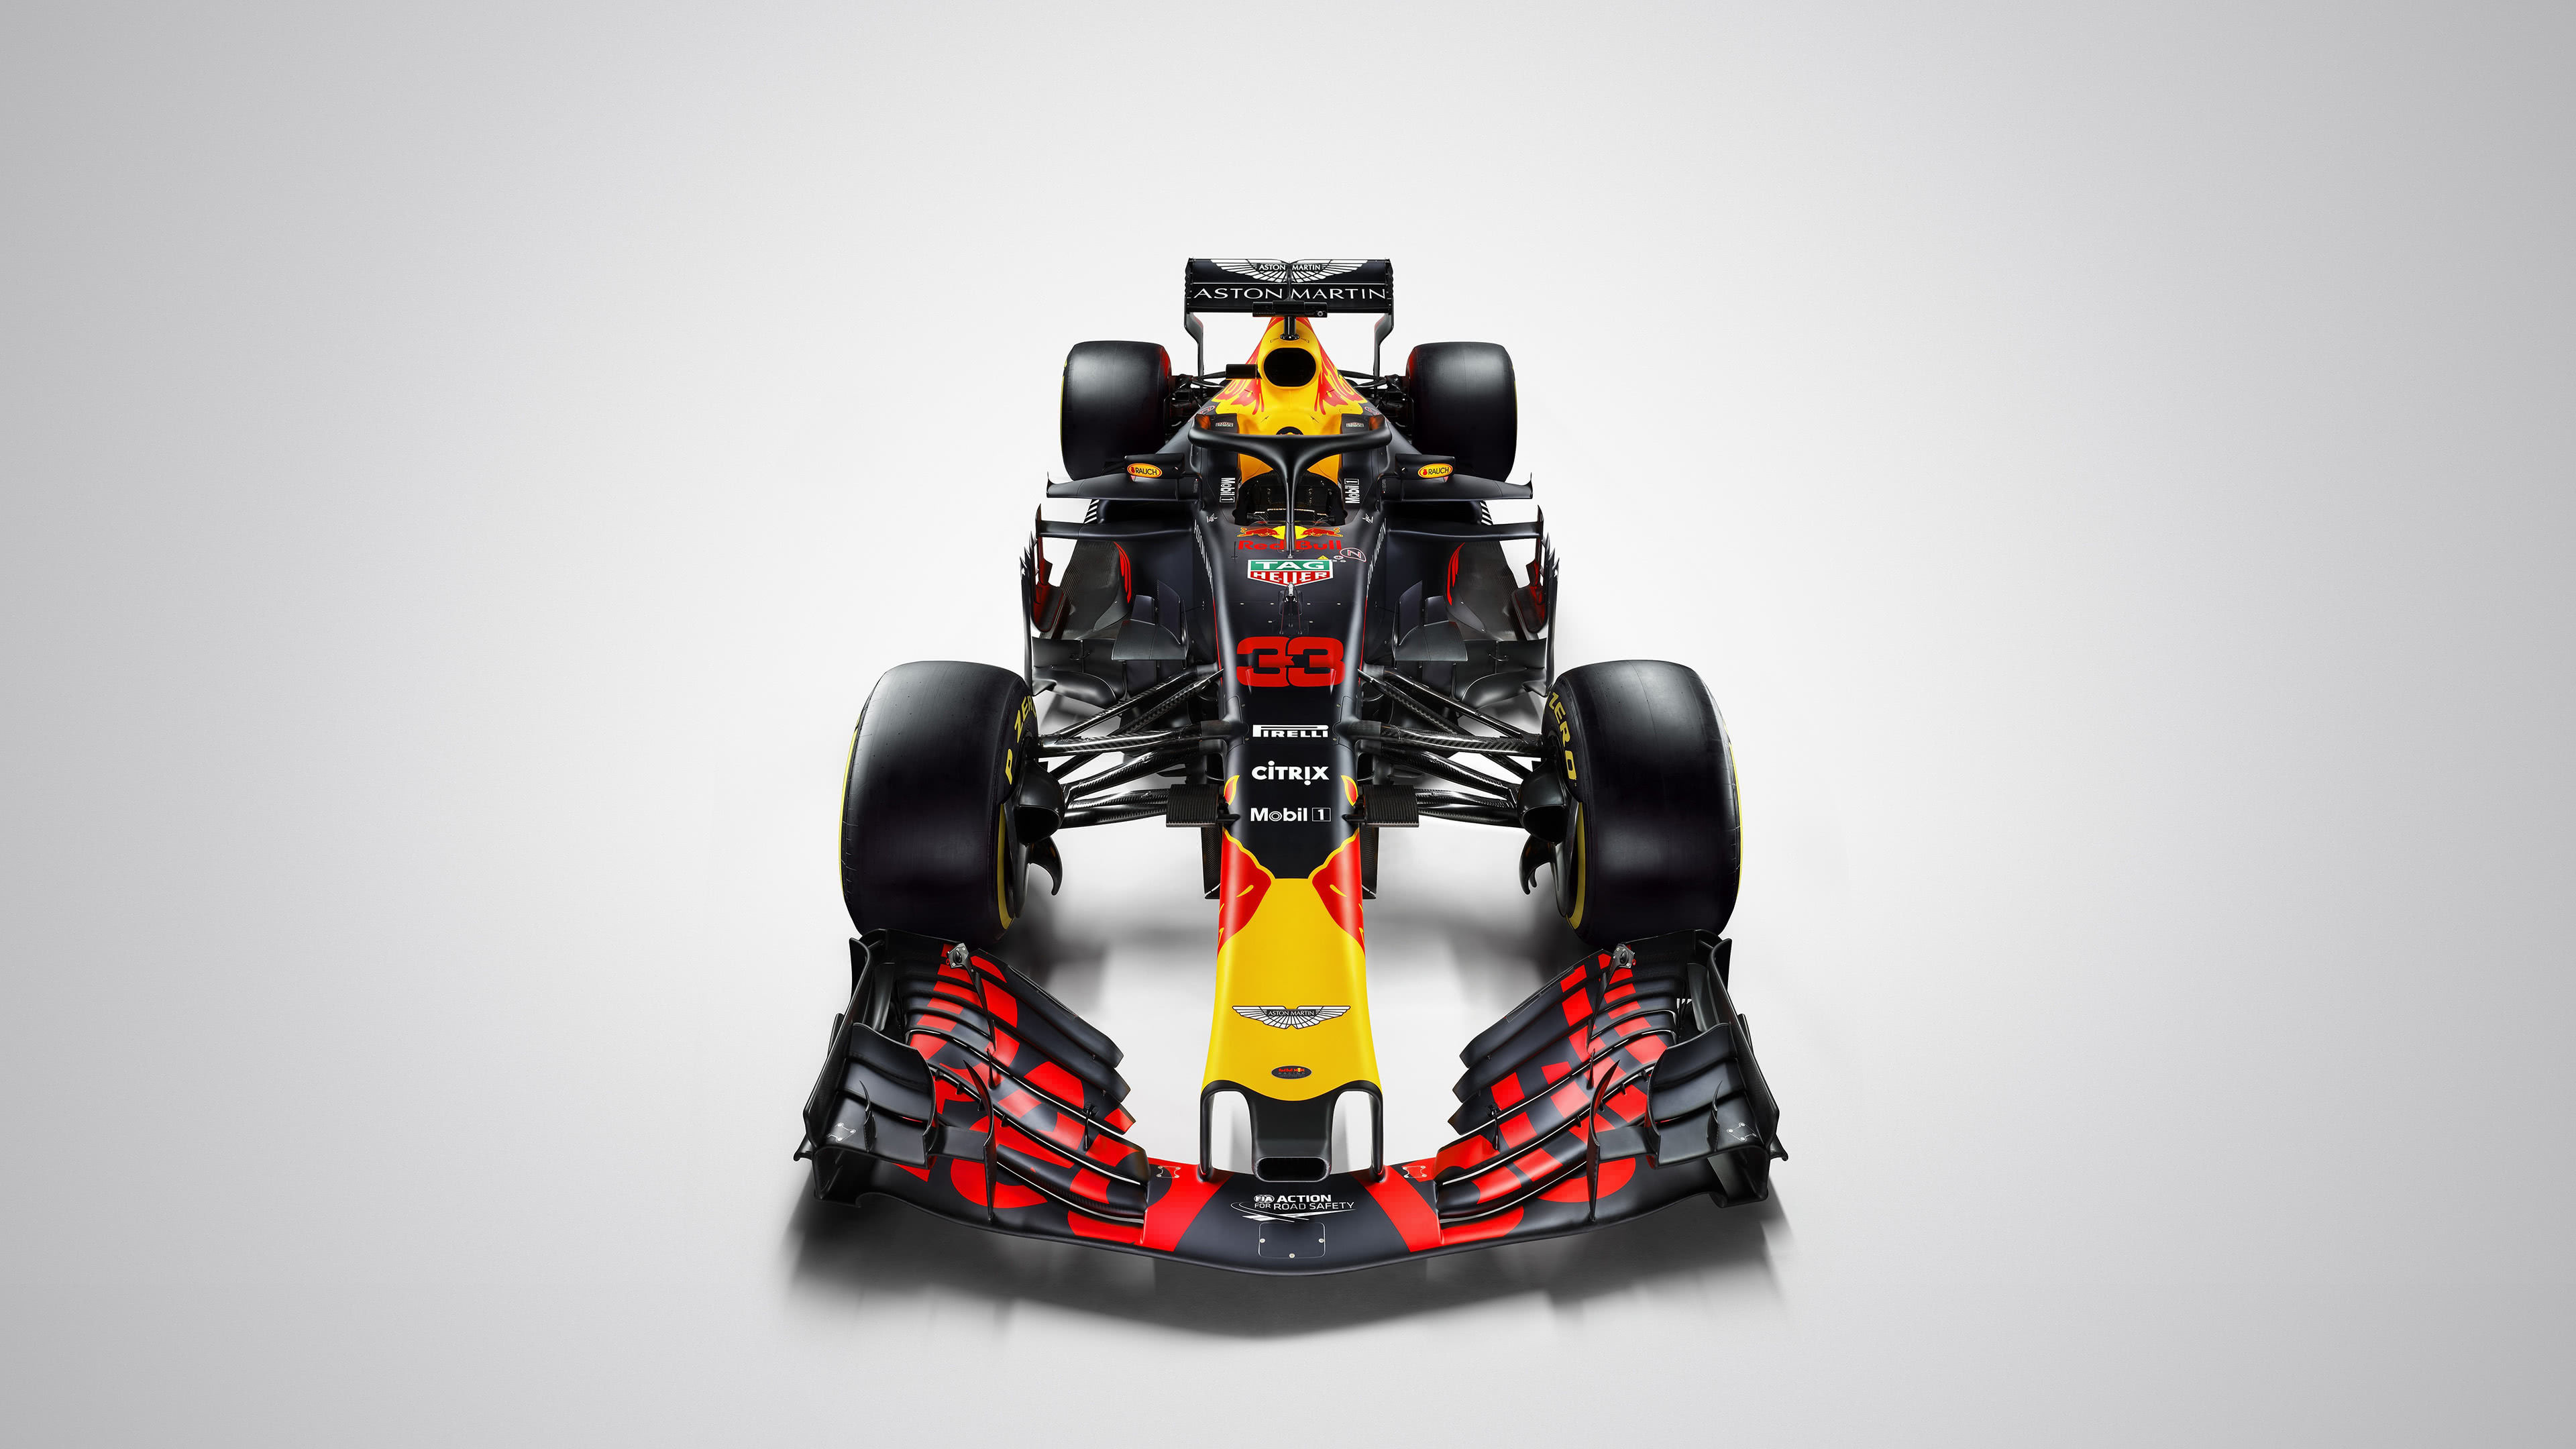 Aston Martin Red Bull Racing F1 Uhd 4k Wallpaper Pixelz Cc